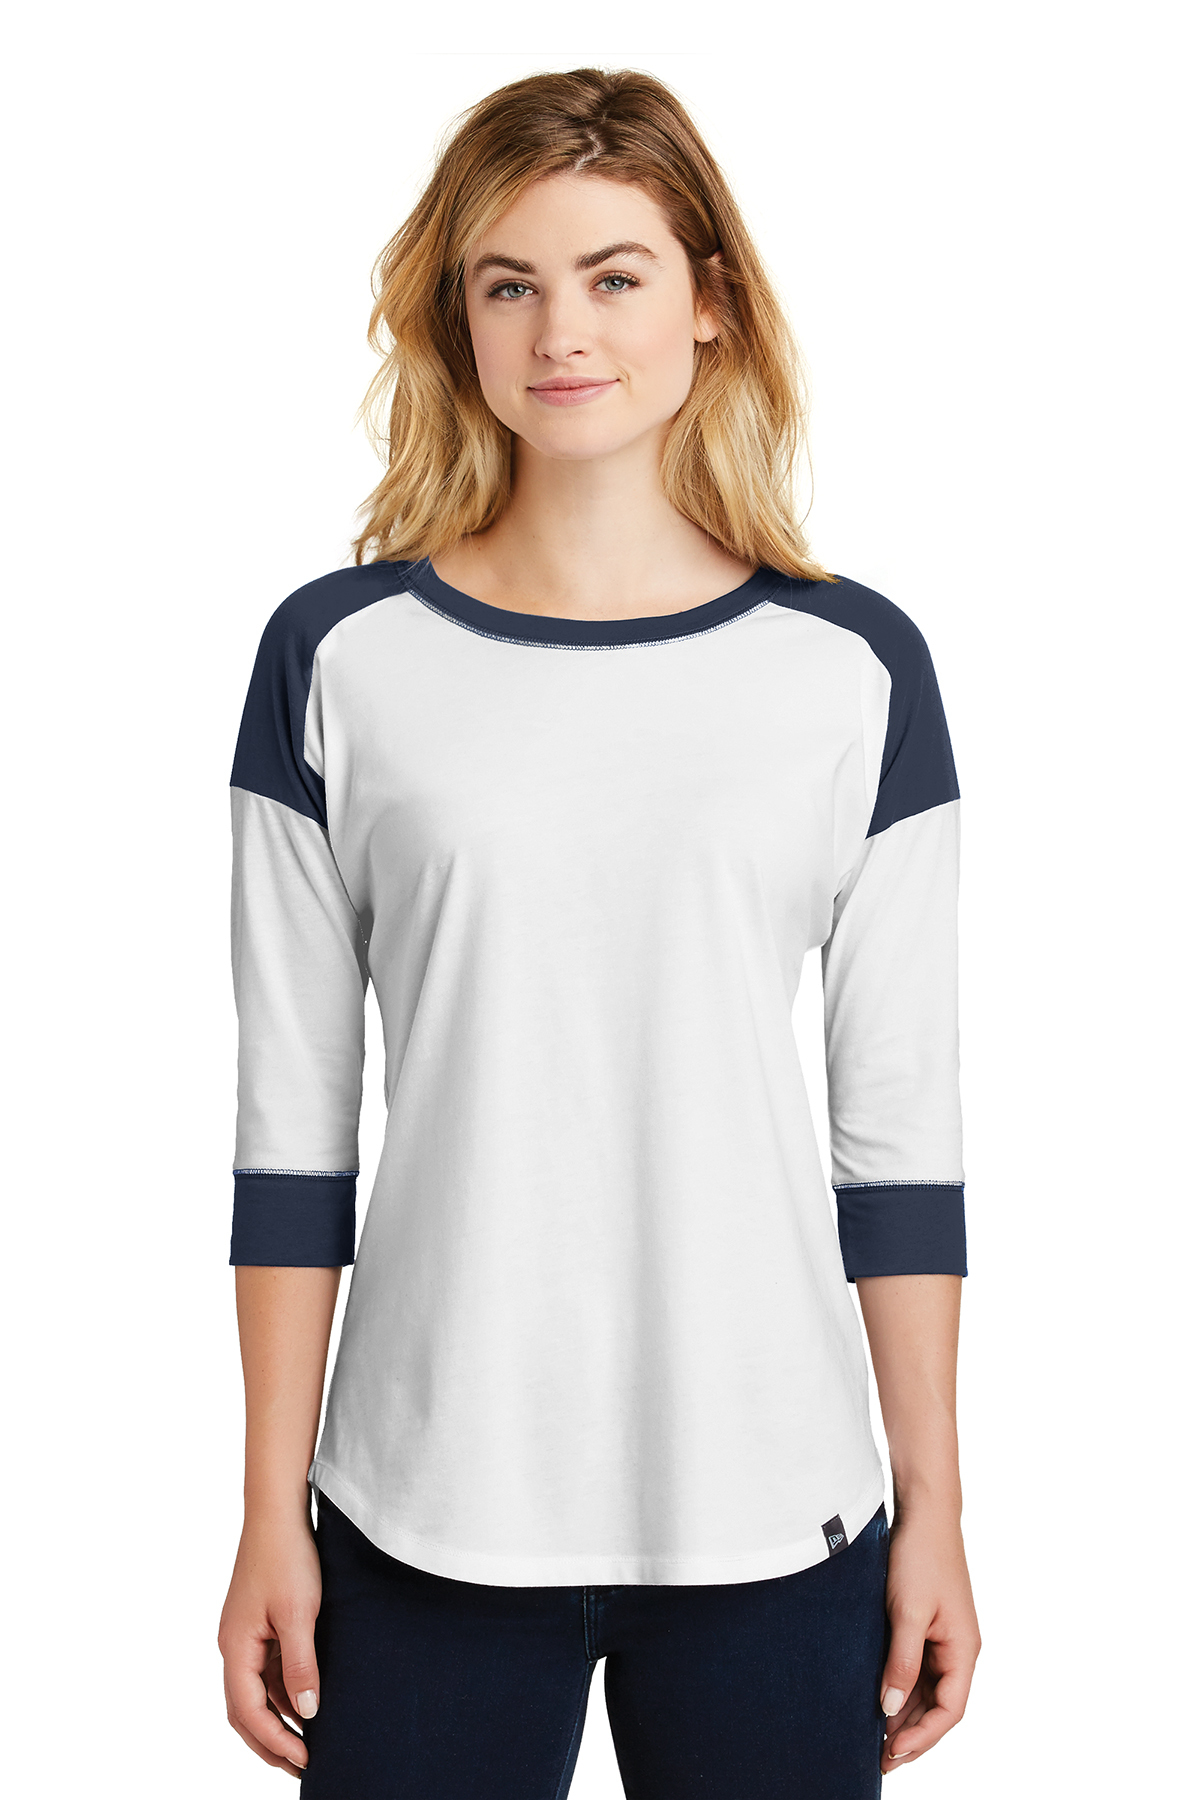 3/4 sleeve baseball shirt womens